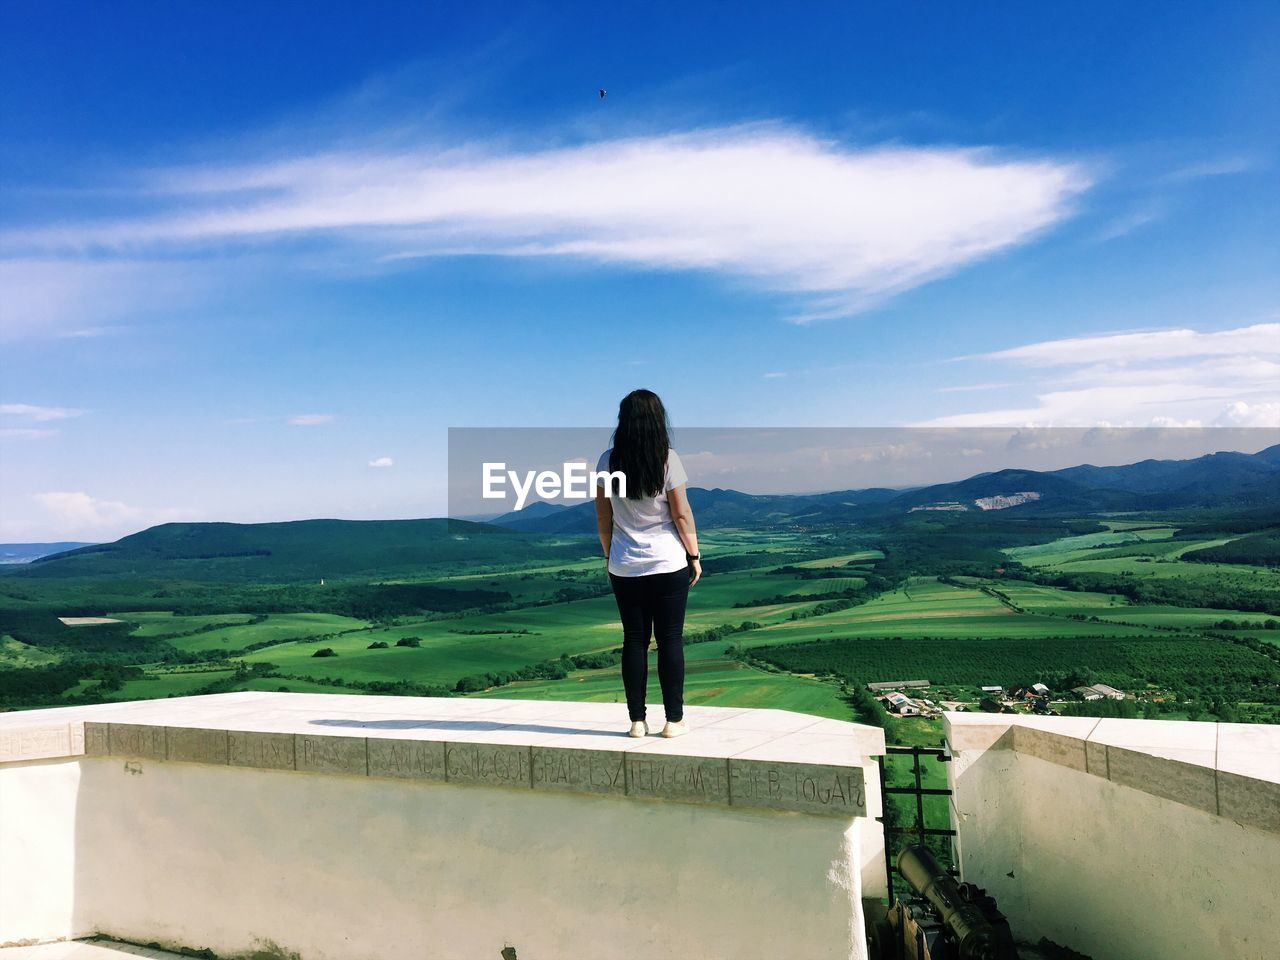 one person, sky, standing, cloud - sky, mountain, real people, lifestyles, beauty in nature, rear view, scenics - nature, leisure activity, nature, women, day, full length, adult, casual clothing, landscape, environment, outdoors, hairstyle, looking at view